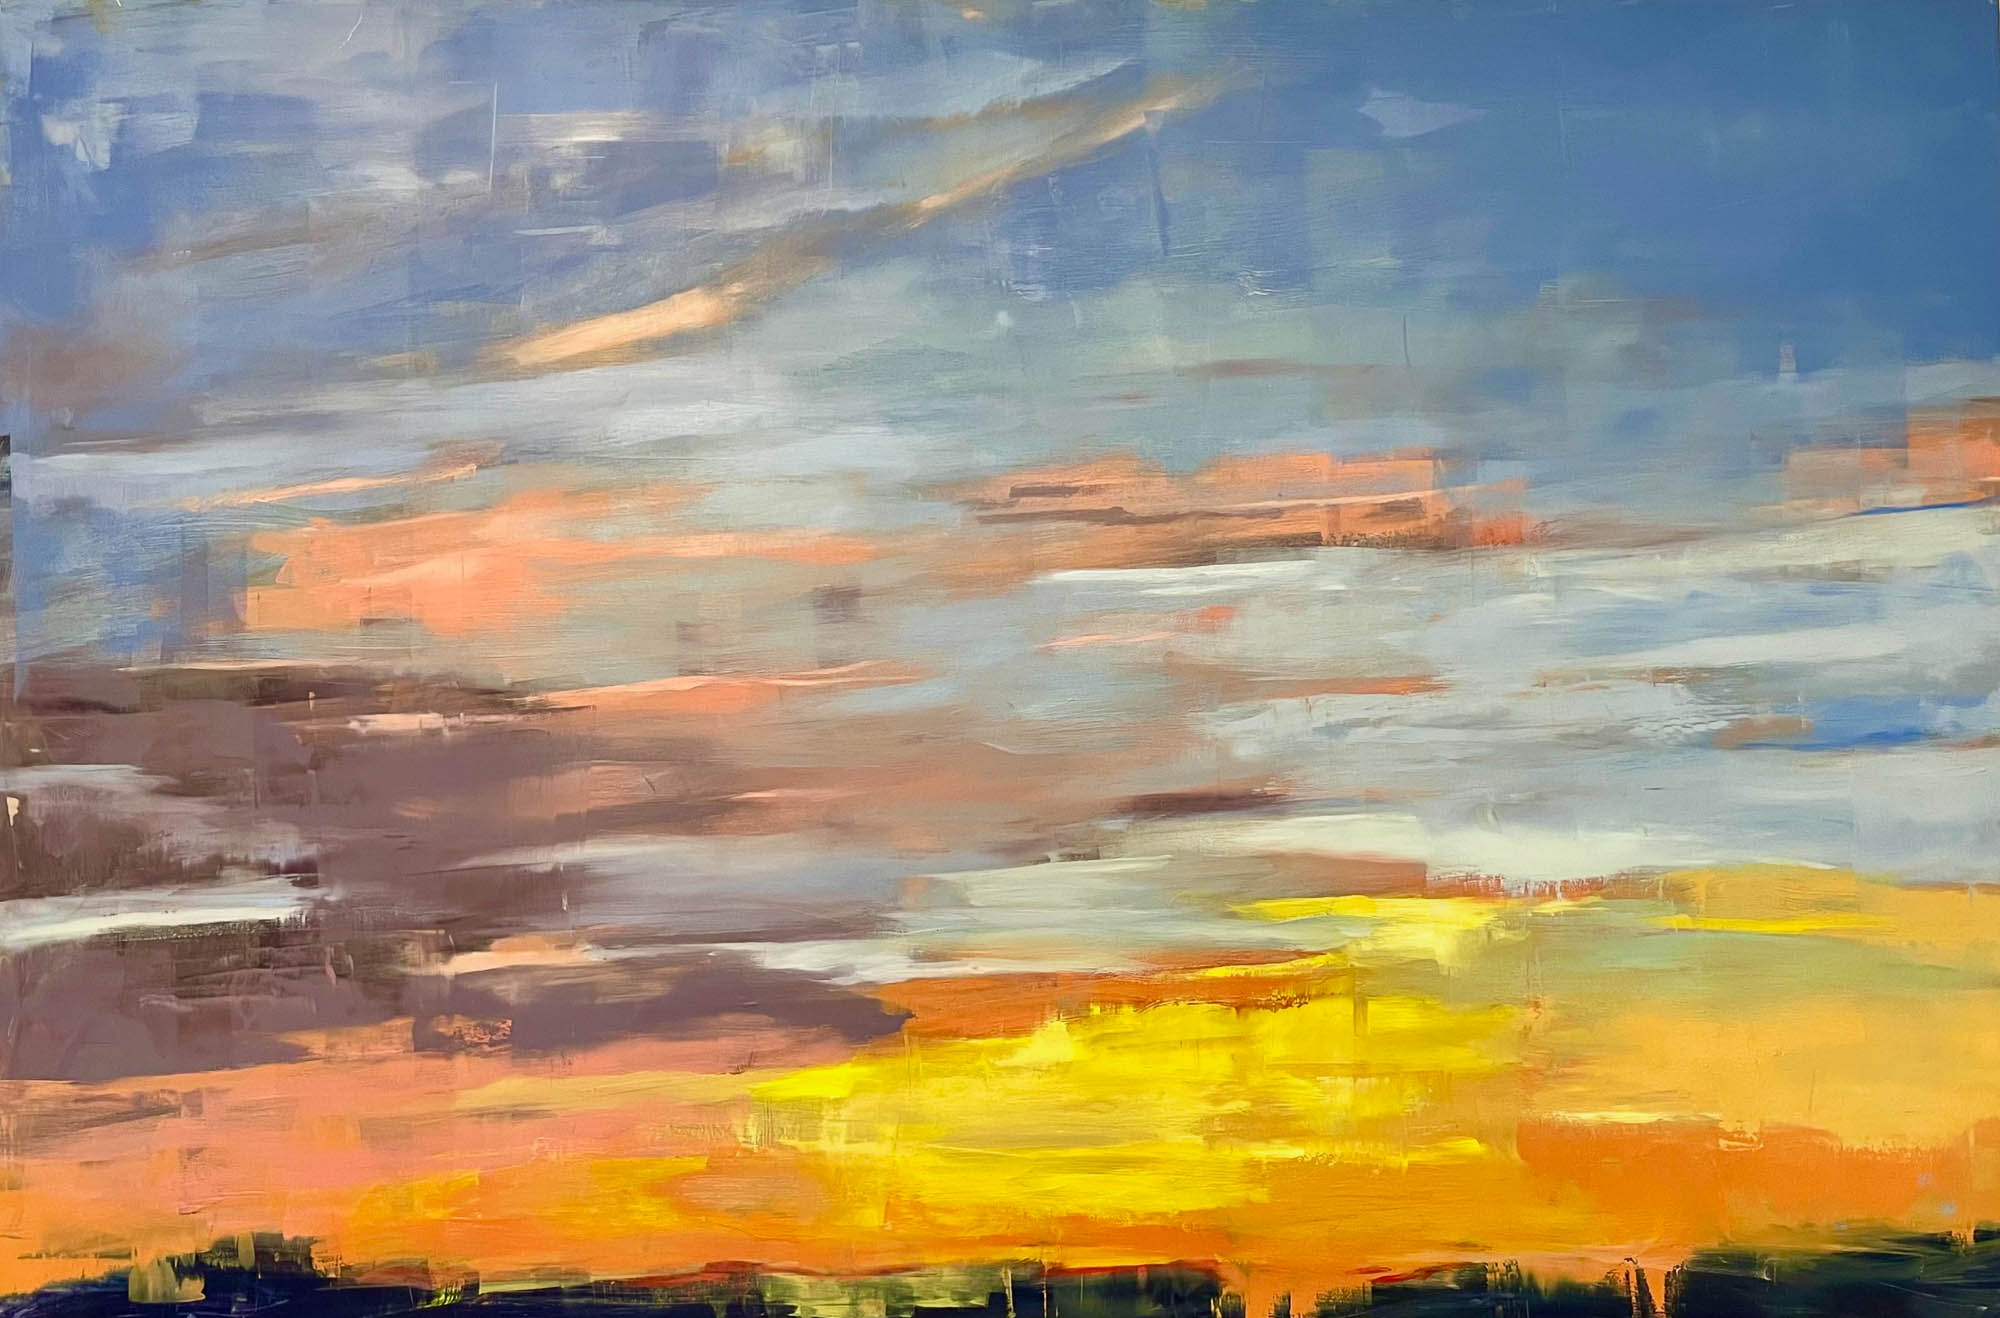 Sunrise 01, 2021, Oil on Panel, 24x36 inches